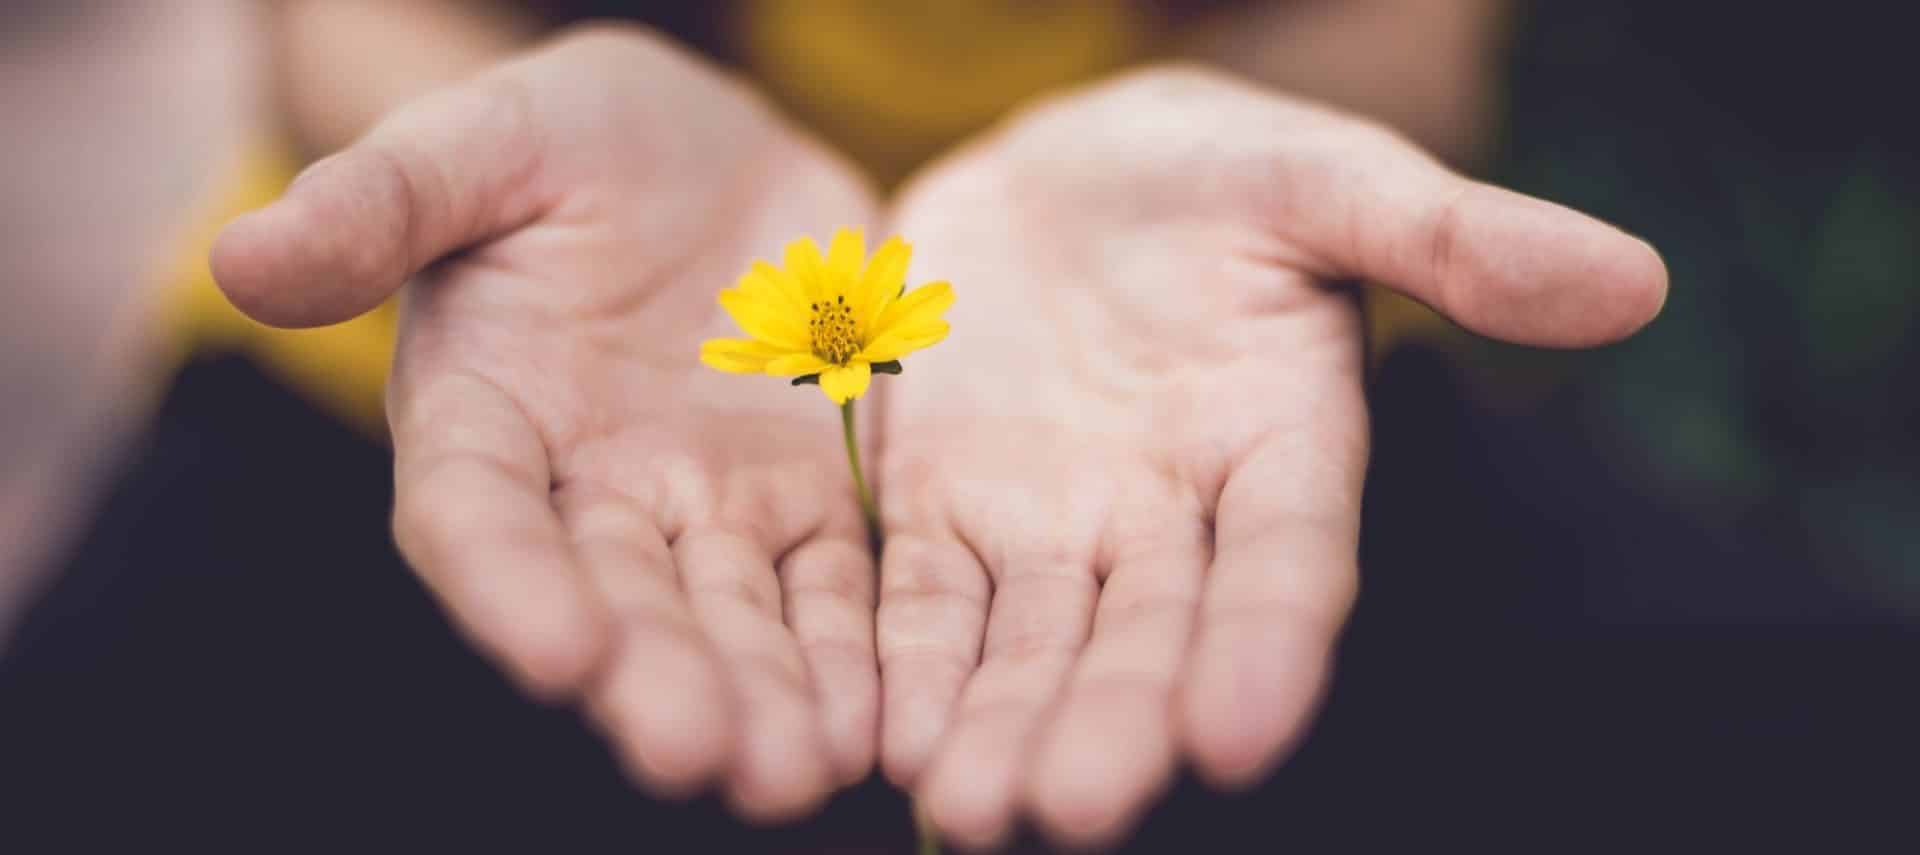 Close up view of yellow flower in a person's hands